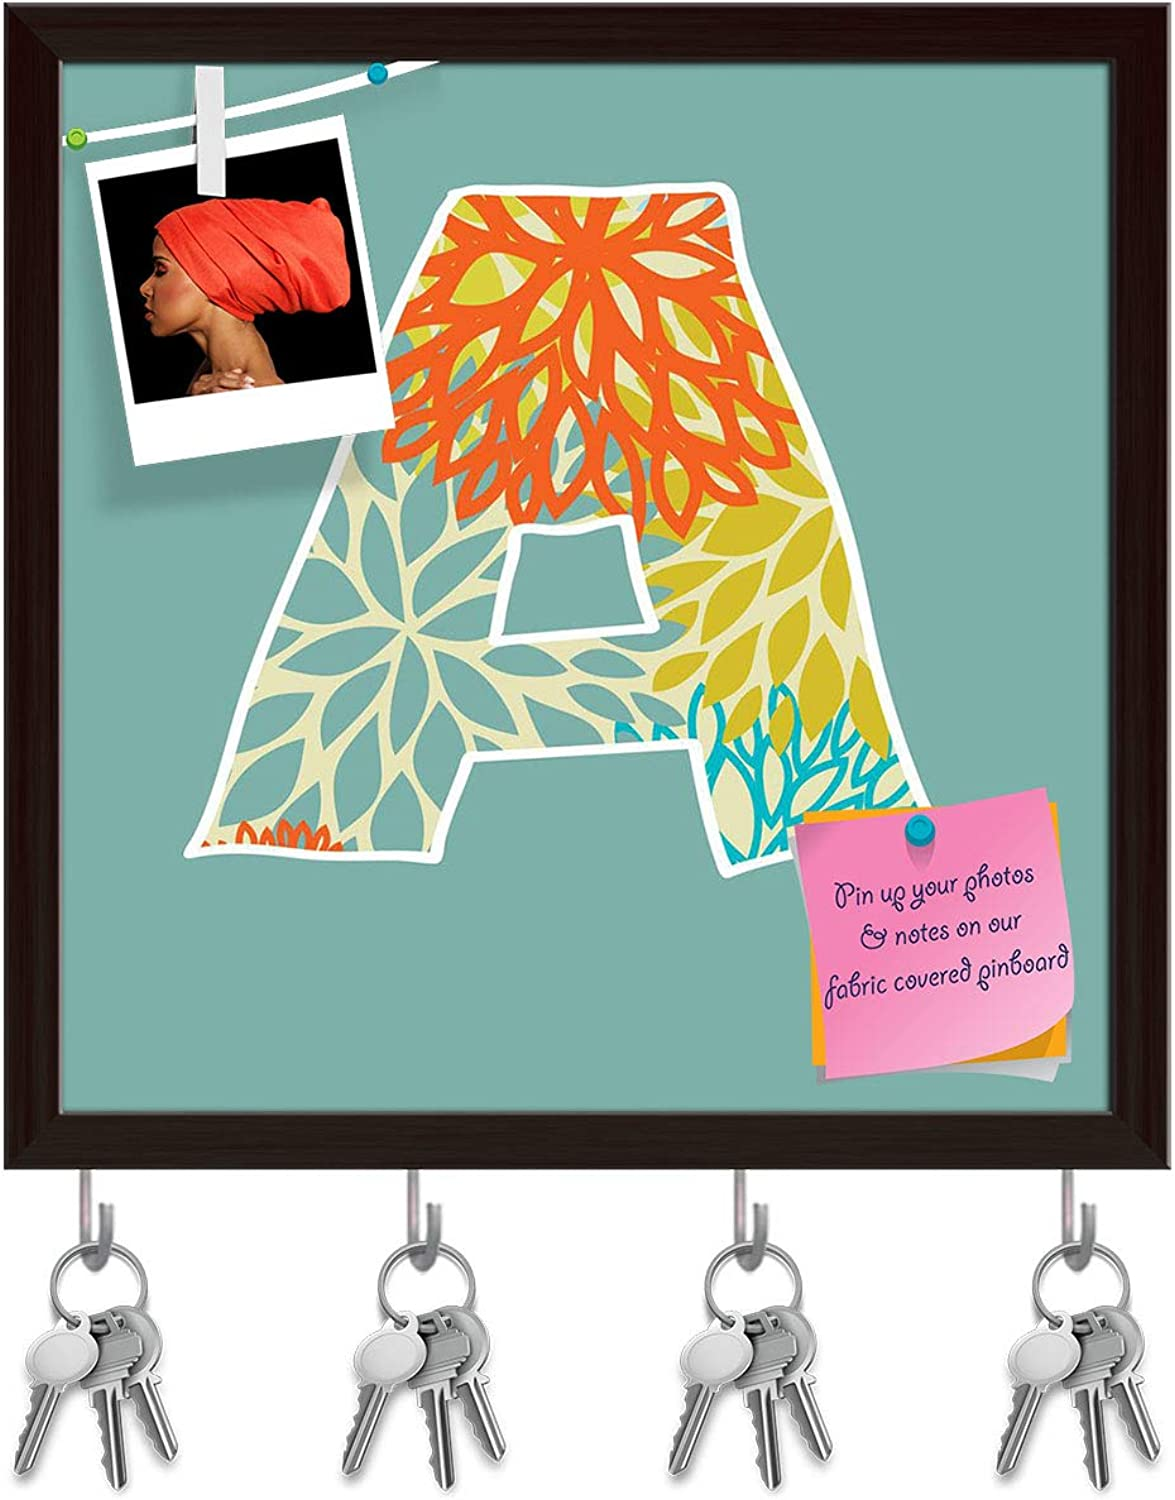 Artzfolio Floral Letter A Key Holder Hooks   Notice Pin Board   Dark Brown Frame 20 X 20Inch